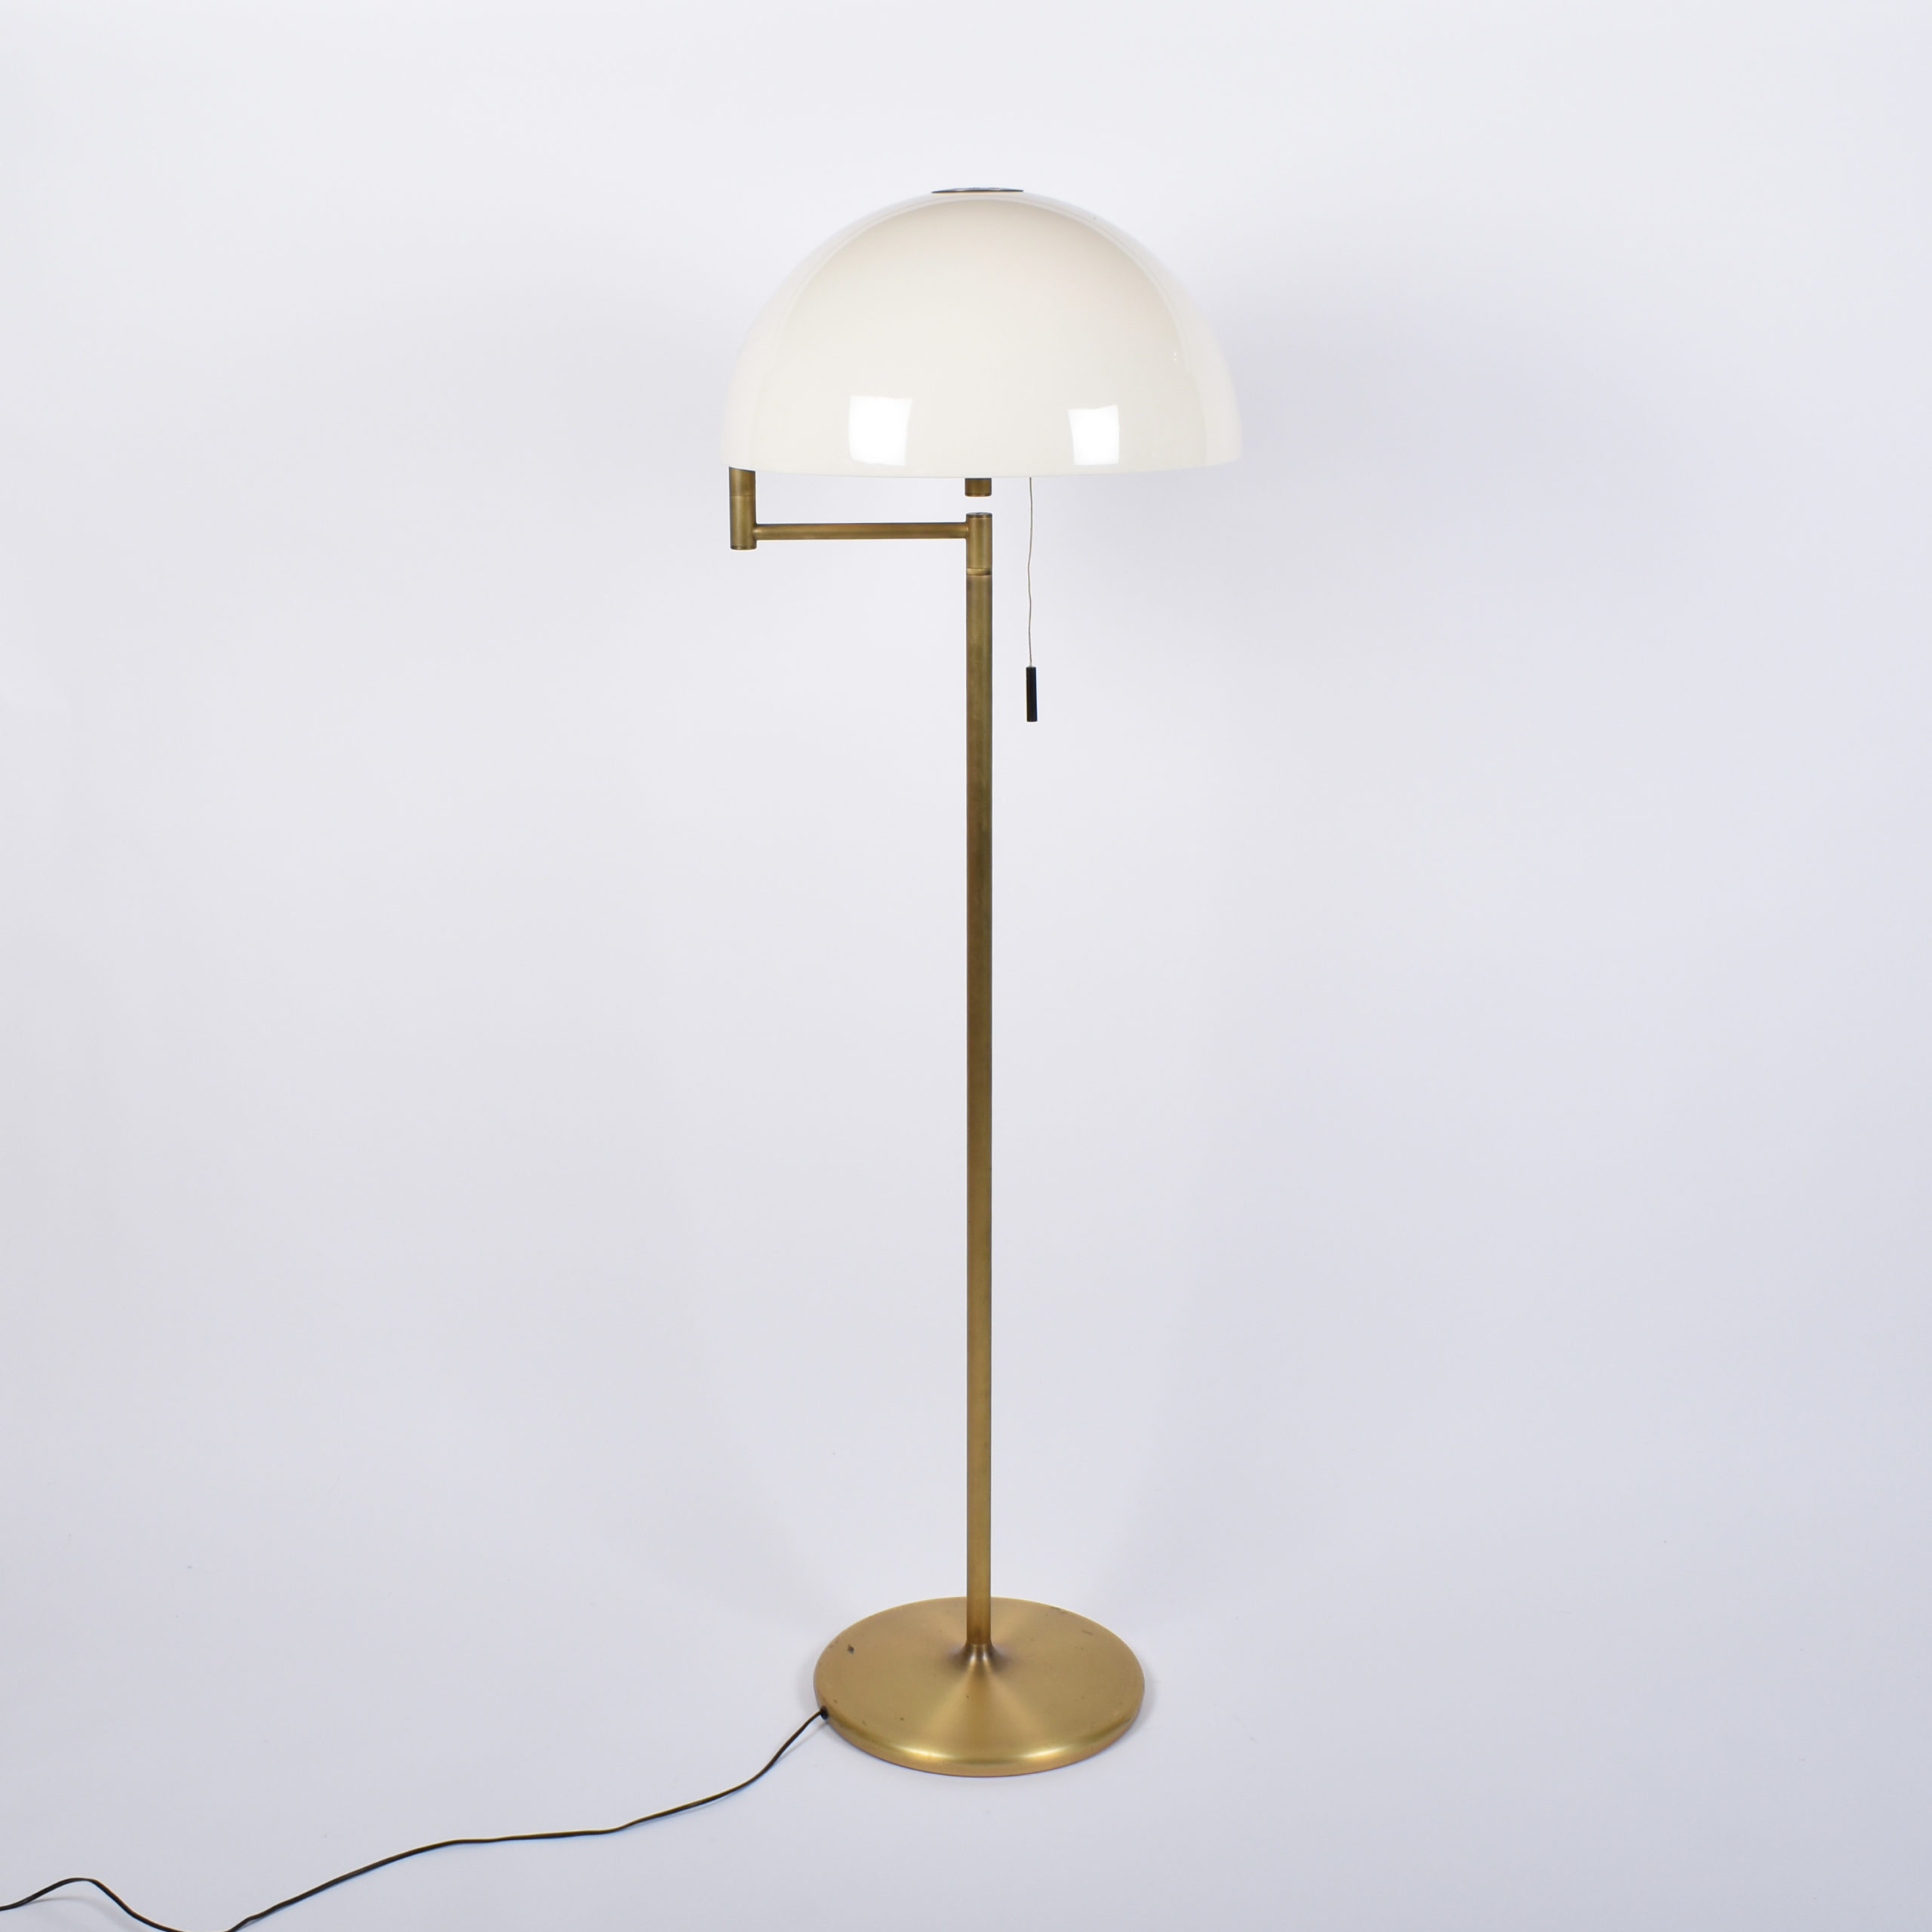 swisslamps-international-brass-floor-lamp